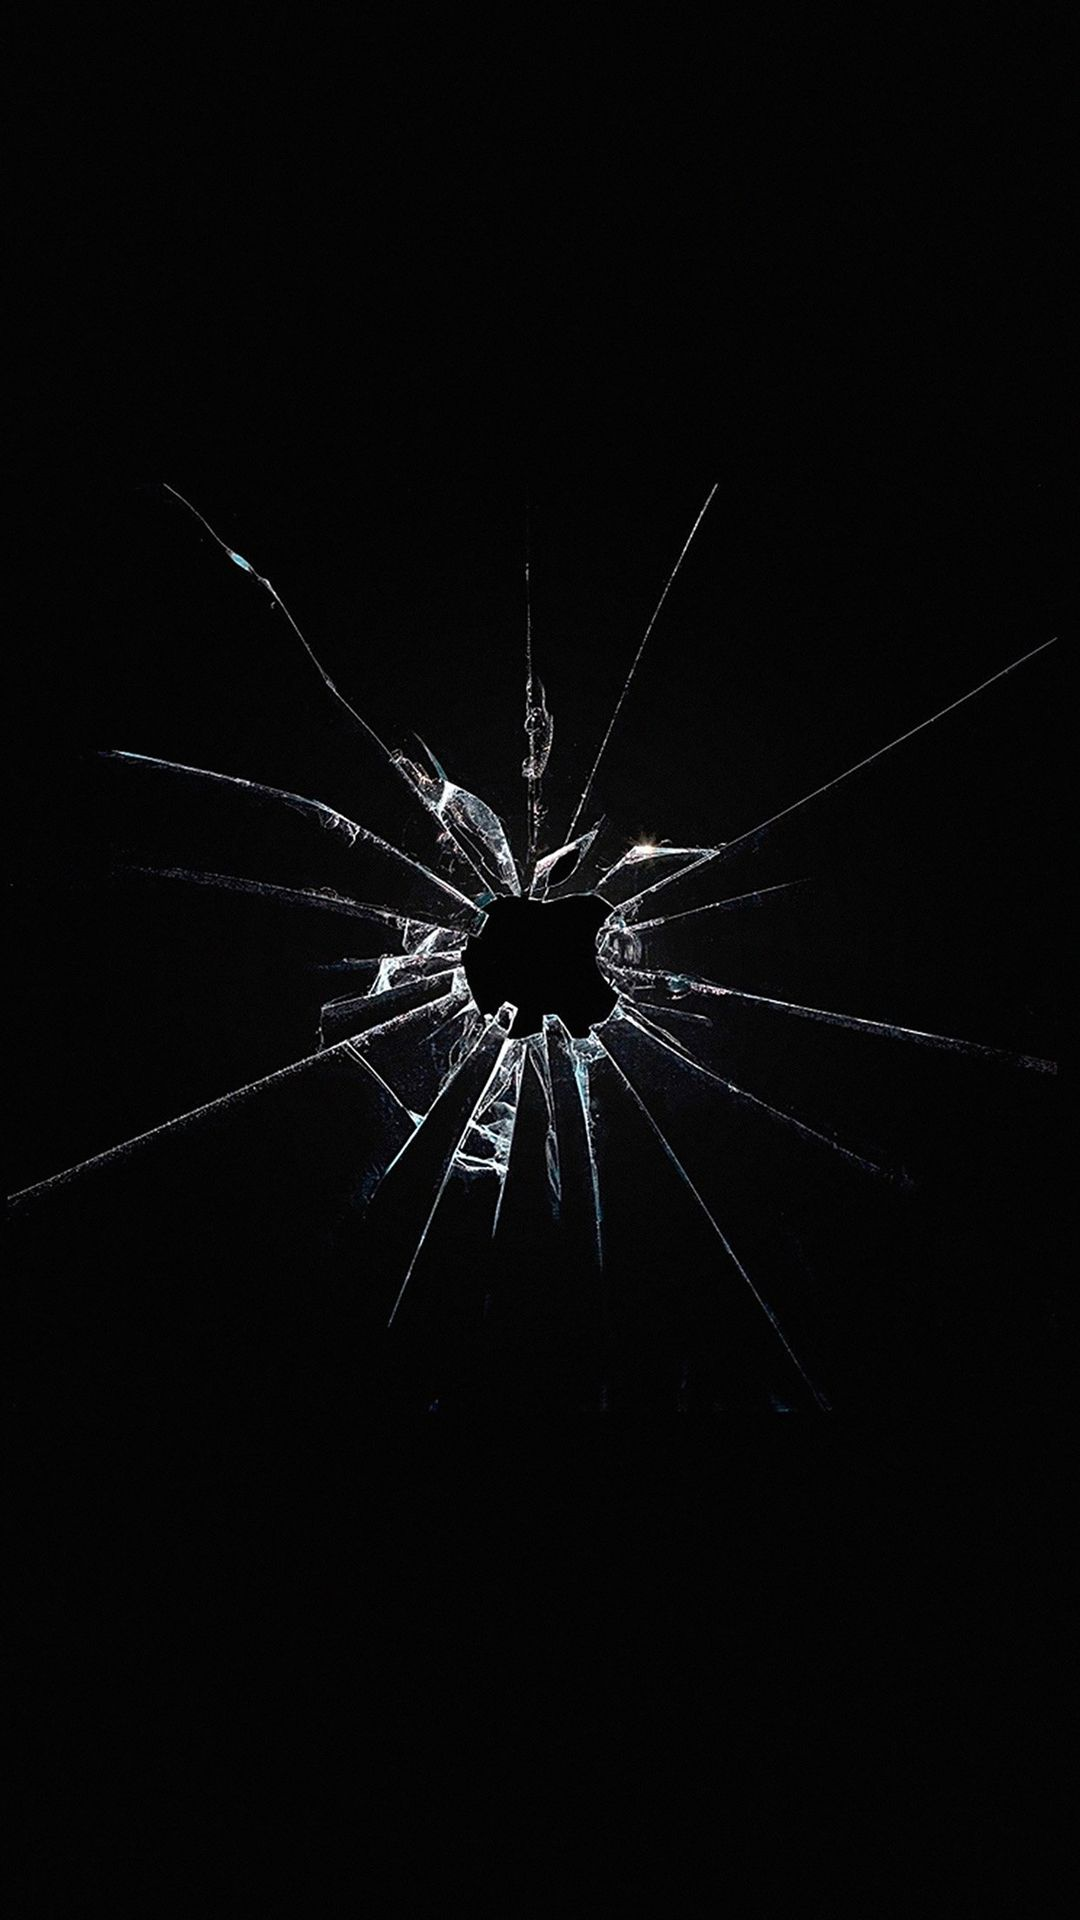 Chipped Iphone 7 Wallpaper In 2020 Broken Glass Wallpaper Dark